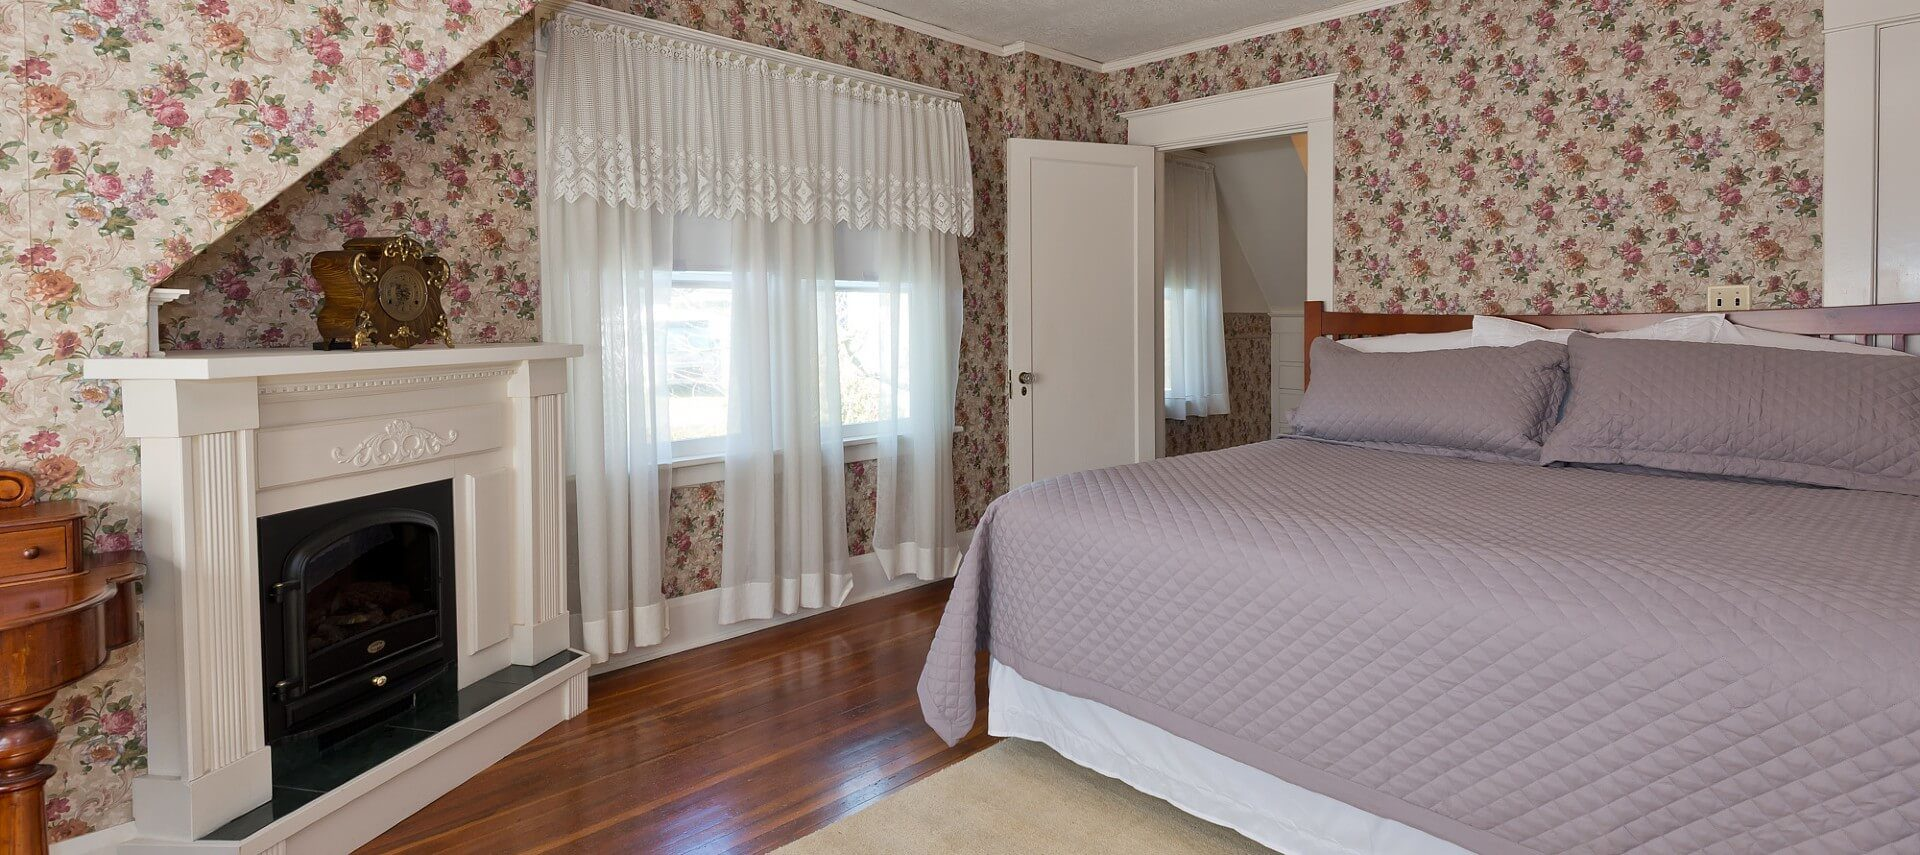 Spacious suite with king bed, fireplace with white mantle, hardwood floors and bright windows